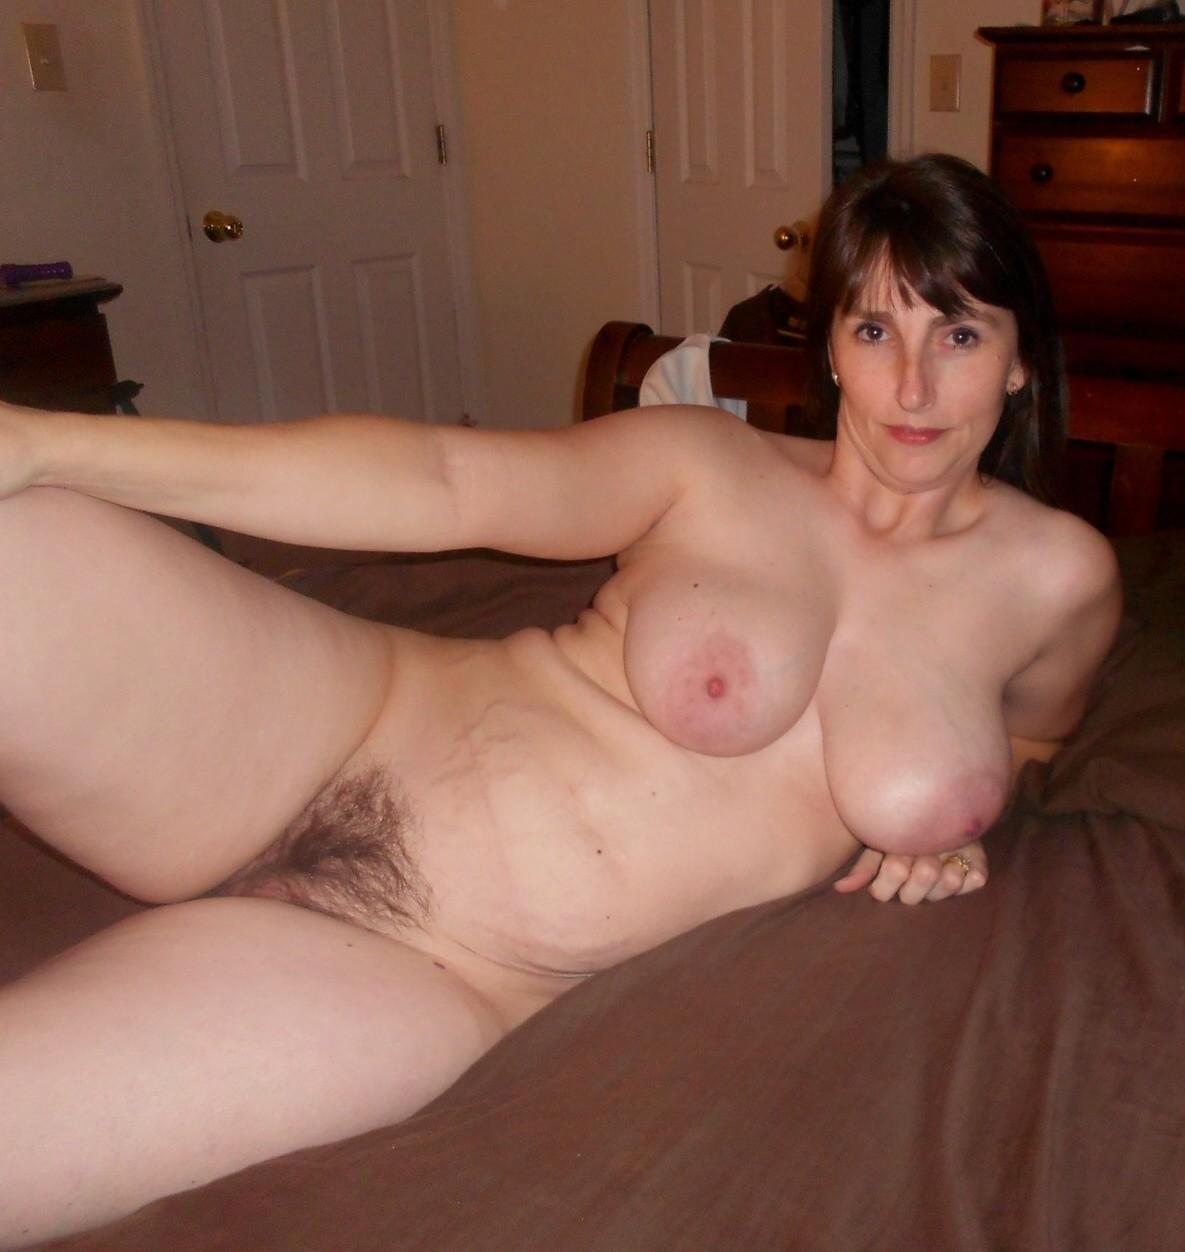 Nude amateur milf uncups her great tits before exposing her bush twat. Amateur mature proudly displays her hairy pussy in the nude